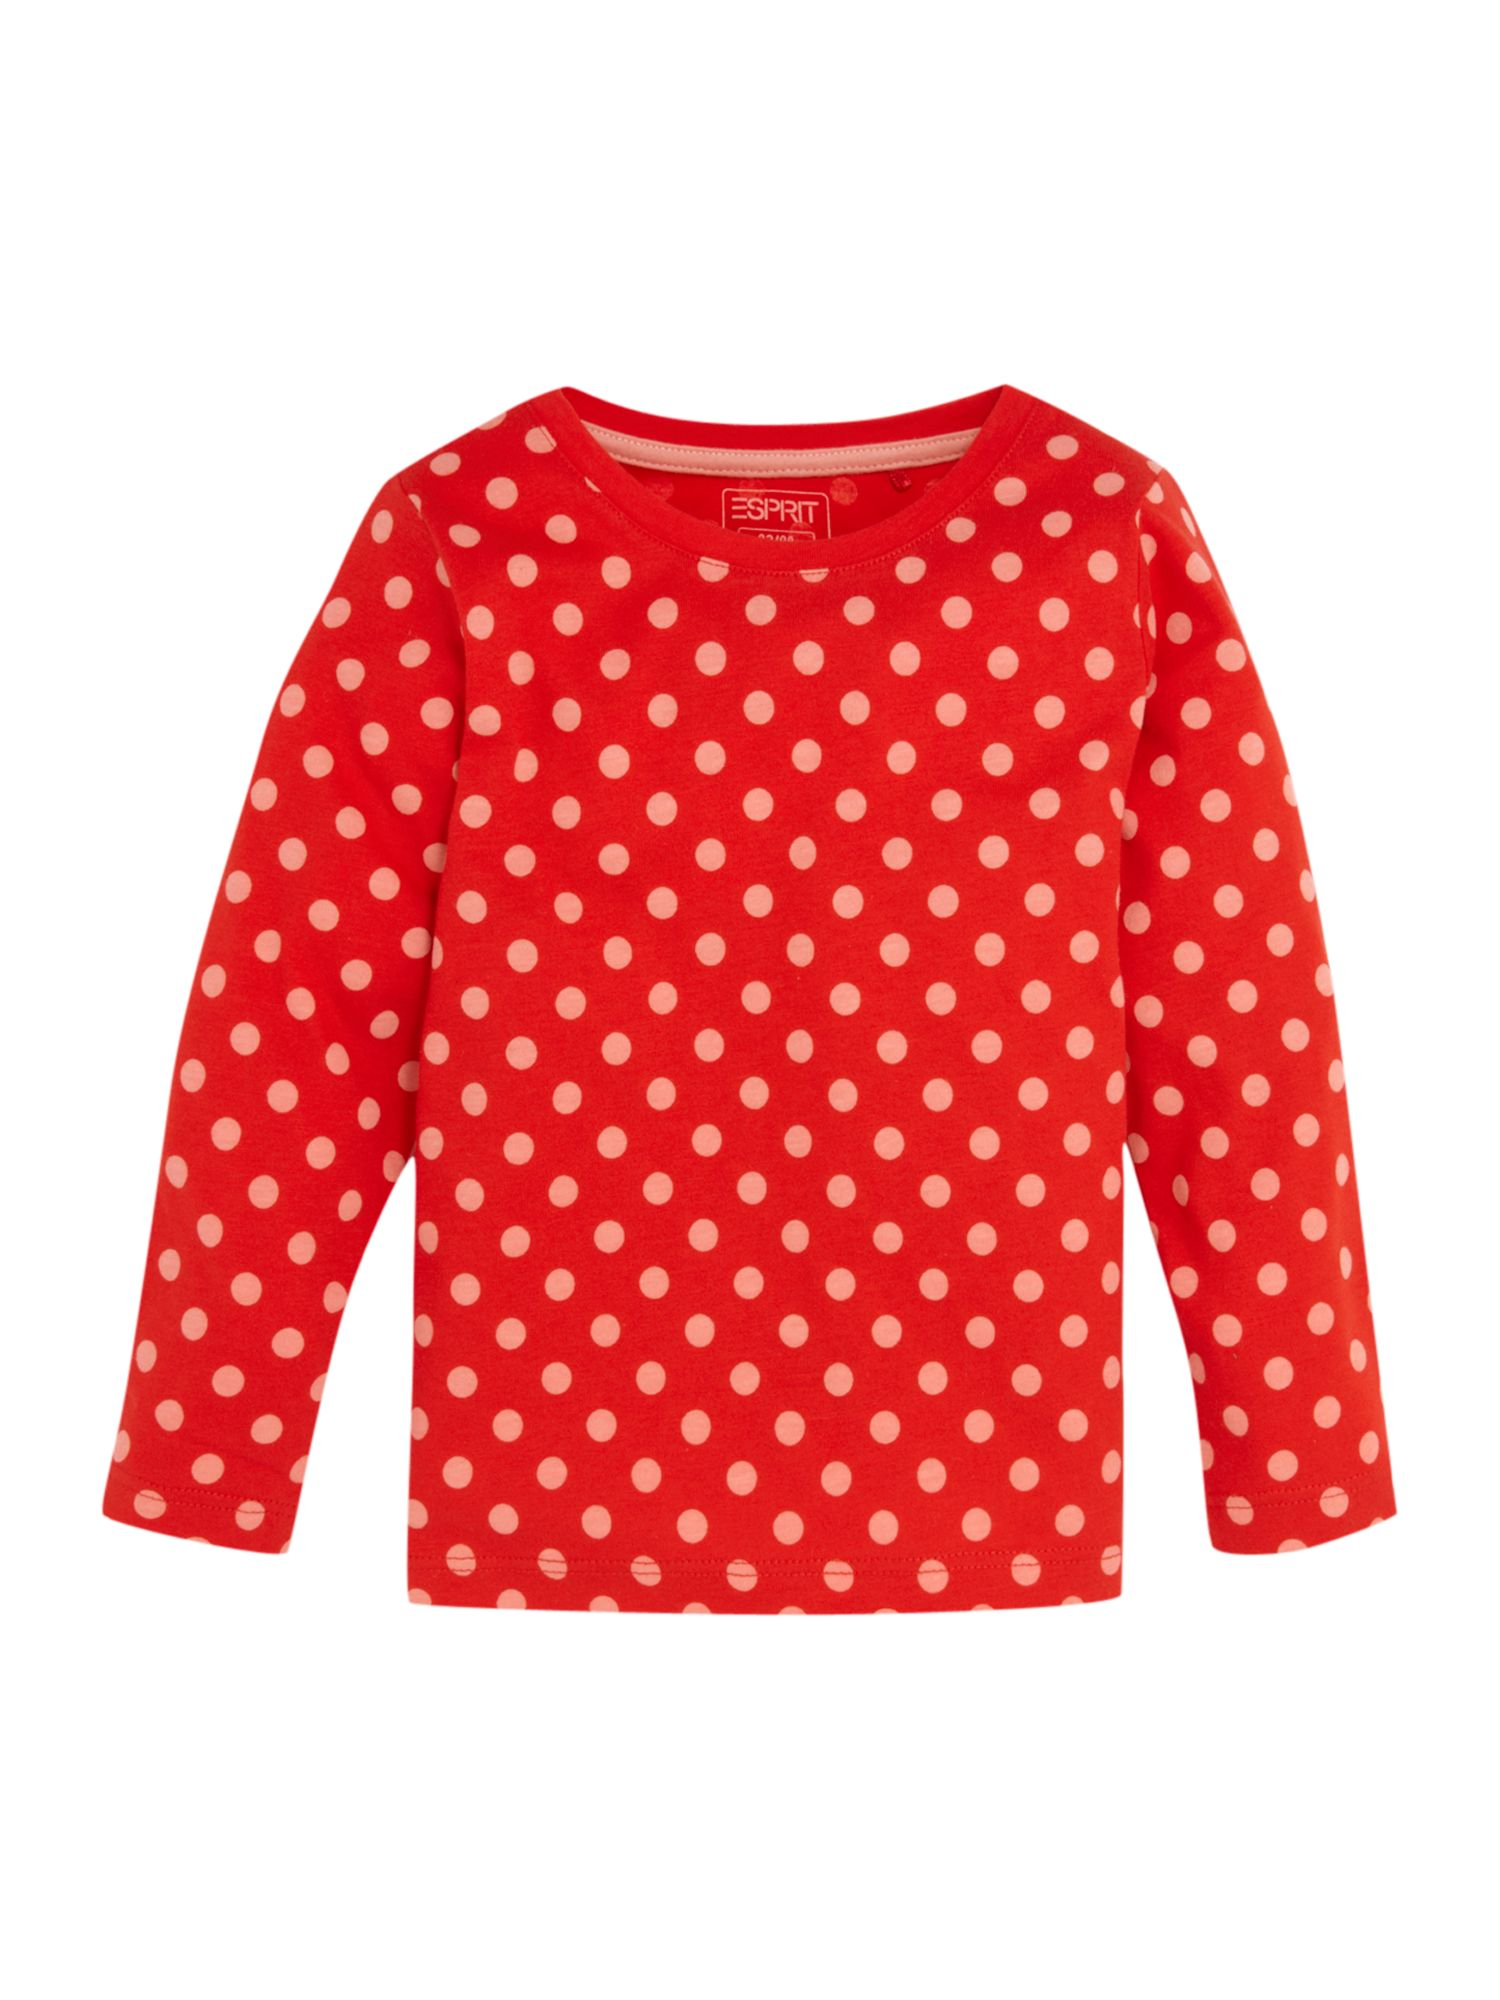 Esprit Long sleeve printed t-shirt, Red 161977782 product image